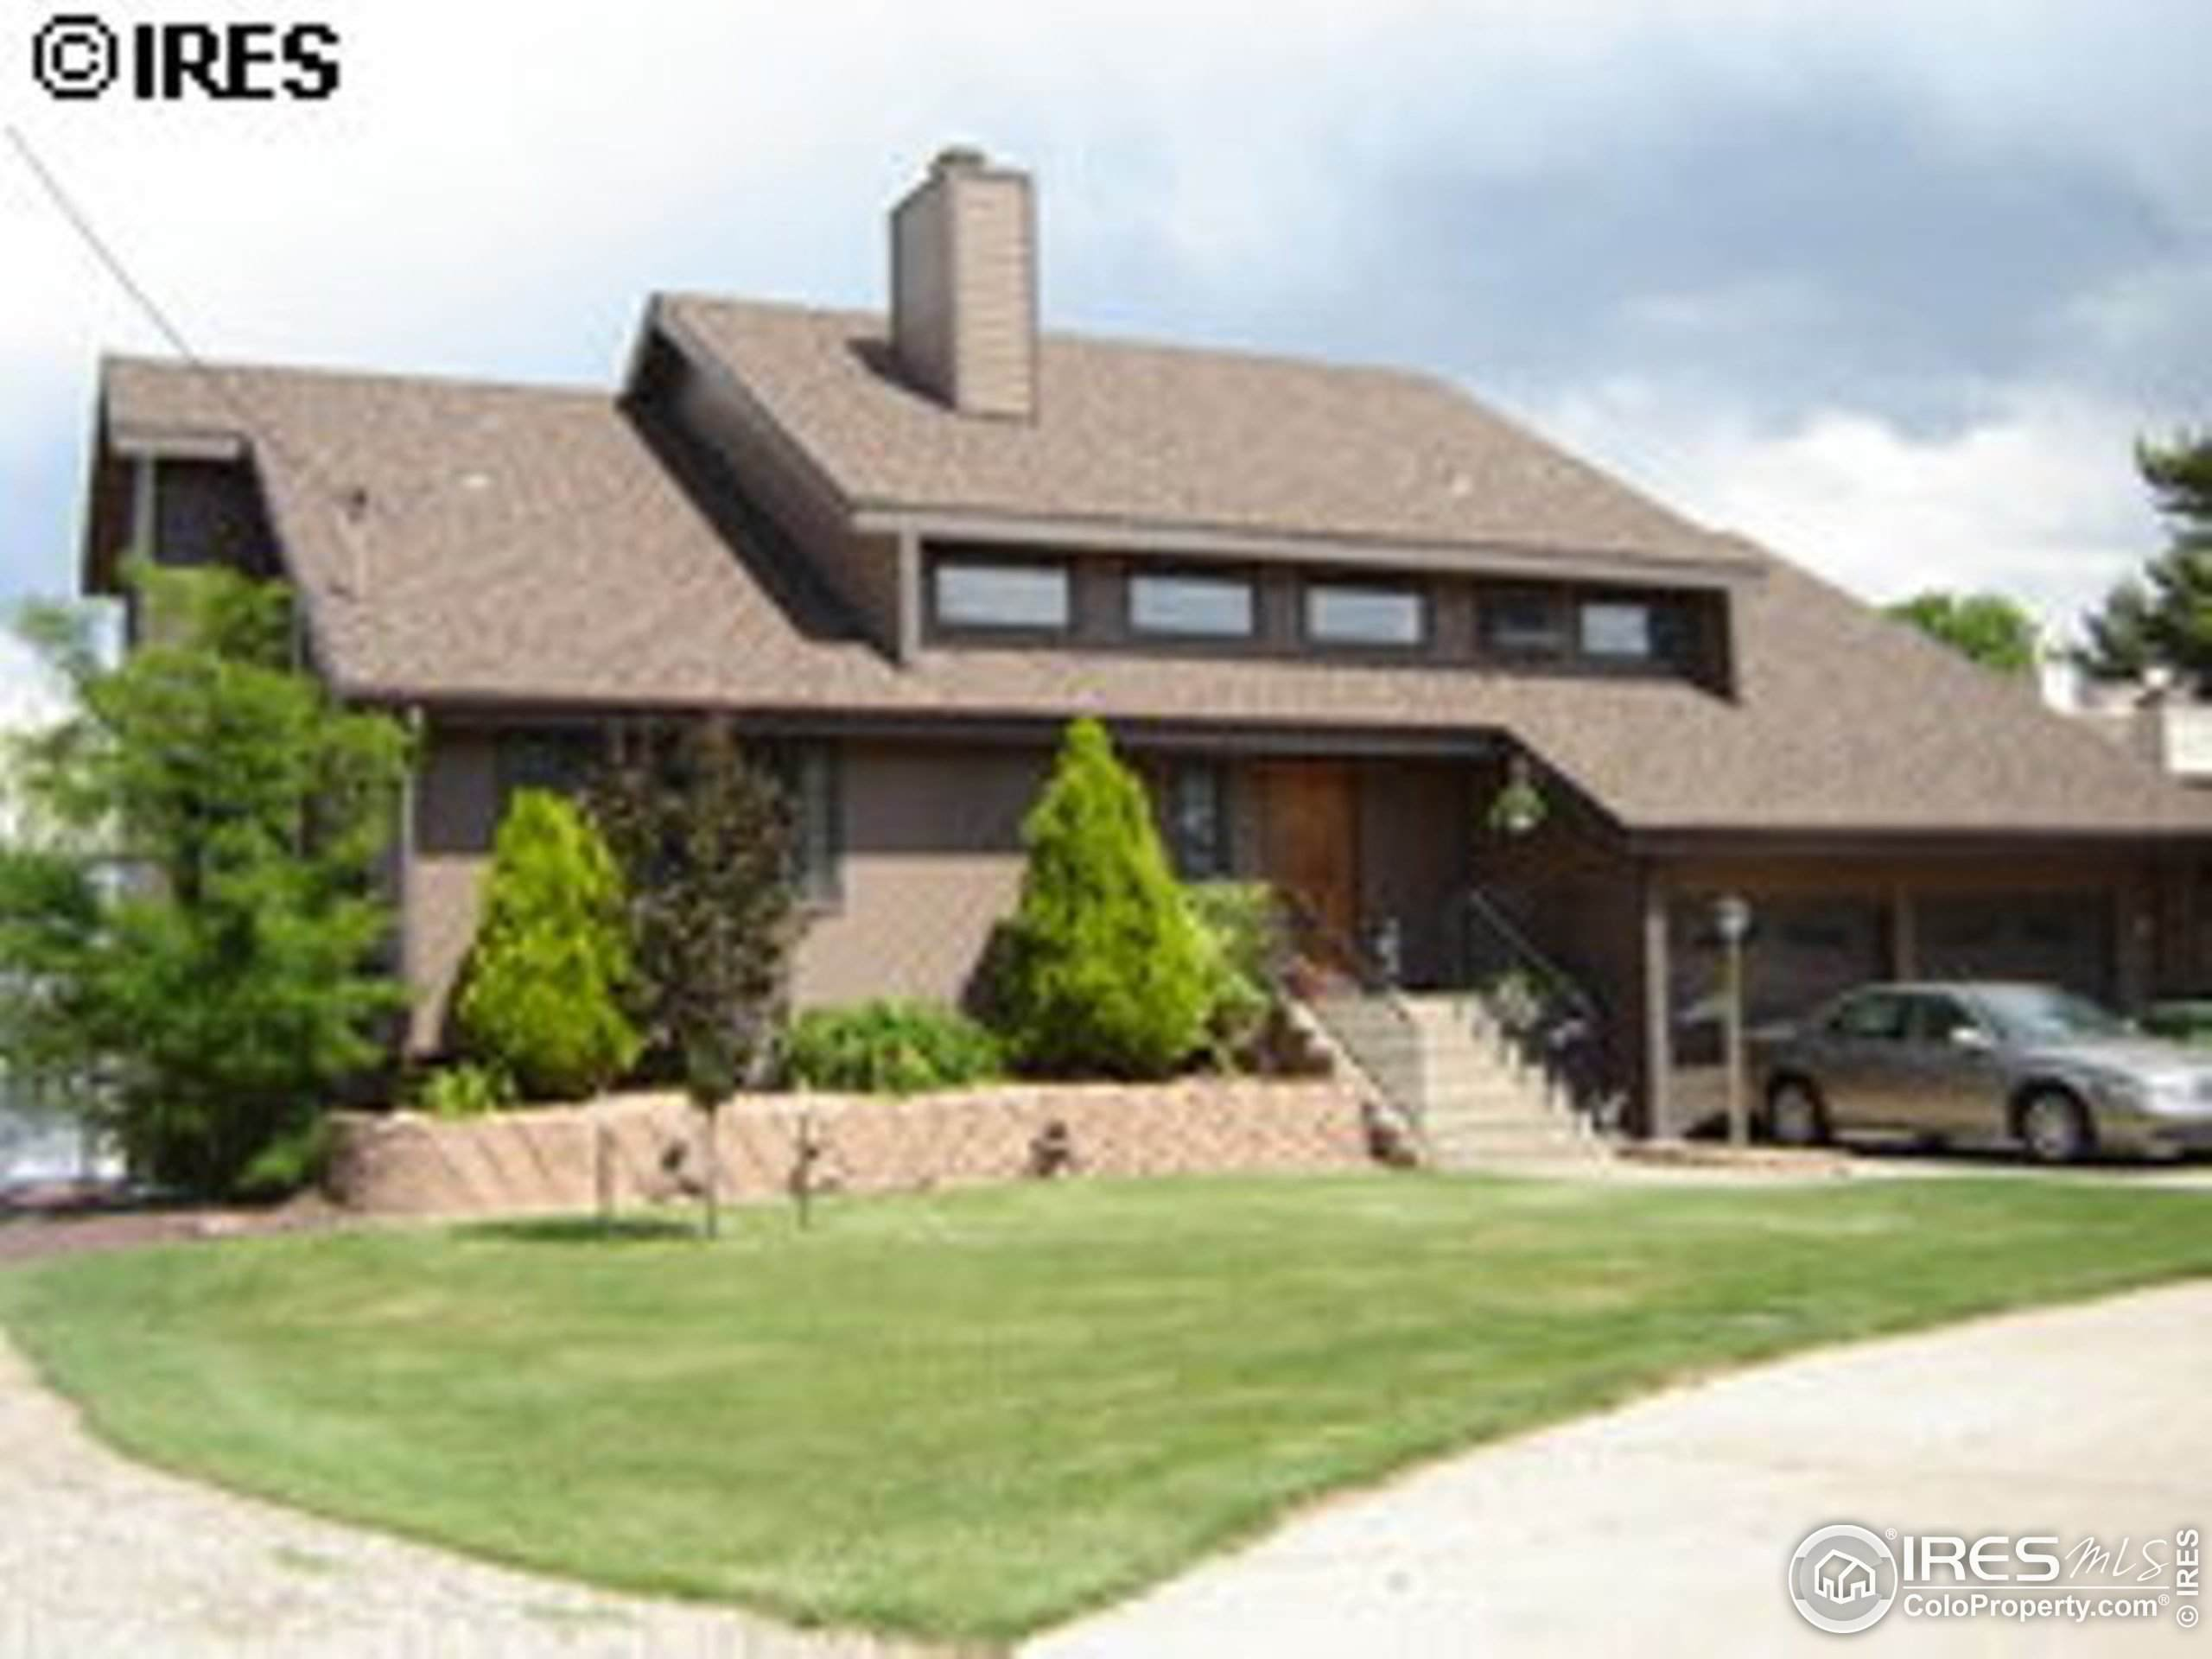 5620 Fossil Creek Pkwy, Fort Collins, CO 80525 (#942370) :: The Margolis Team